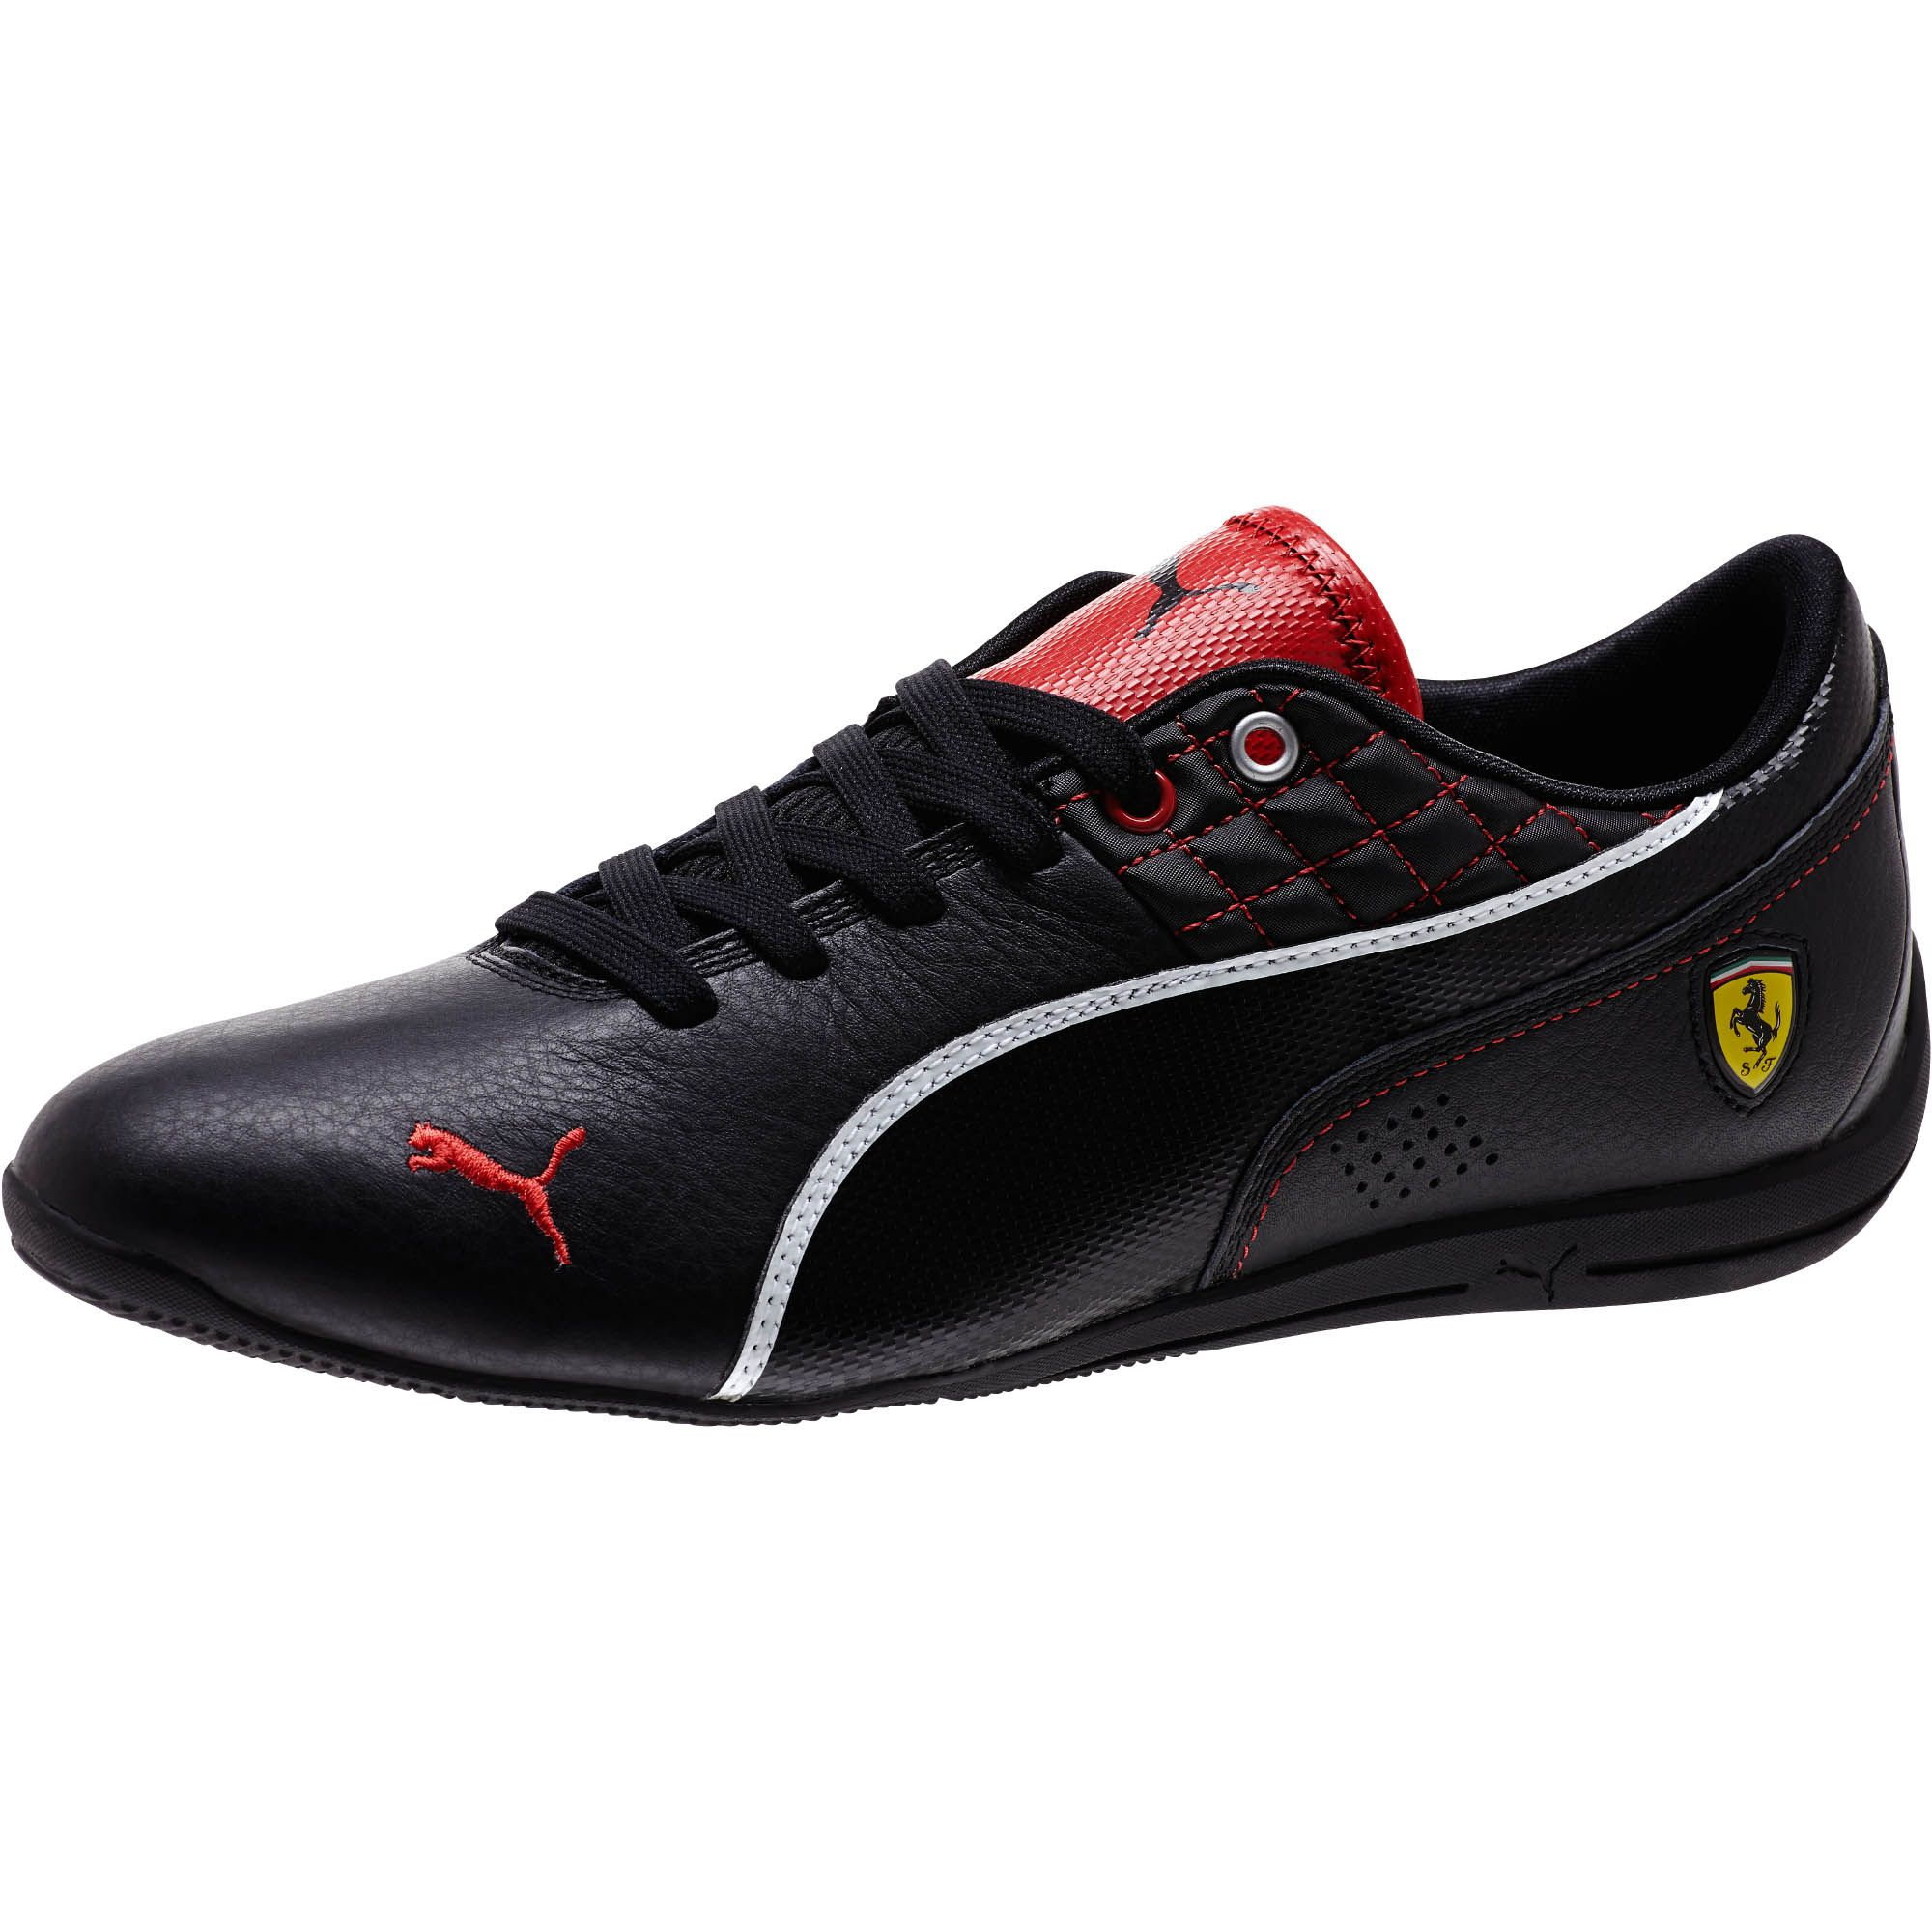 puma ferrari sf flash drift cat sneakers ebay. Black Bedroom Furniture Sets. Home Design Ideas